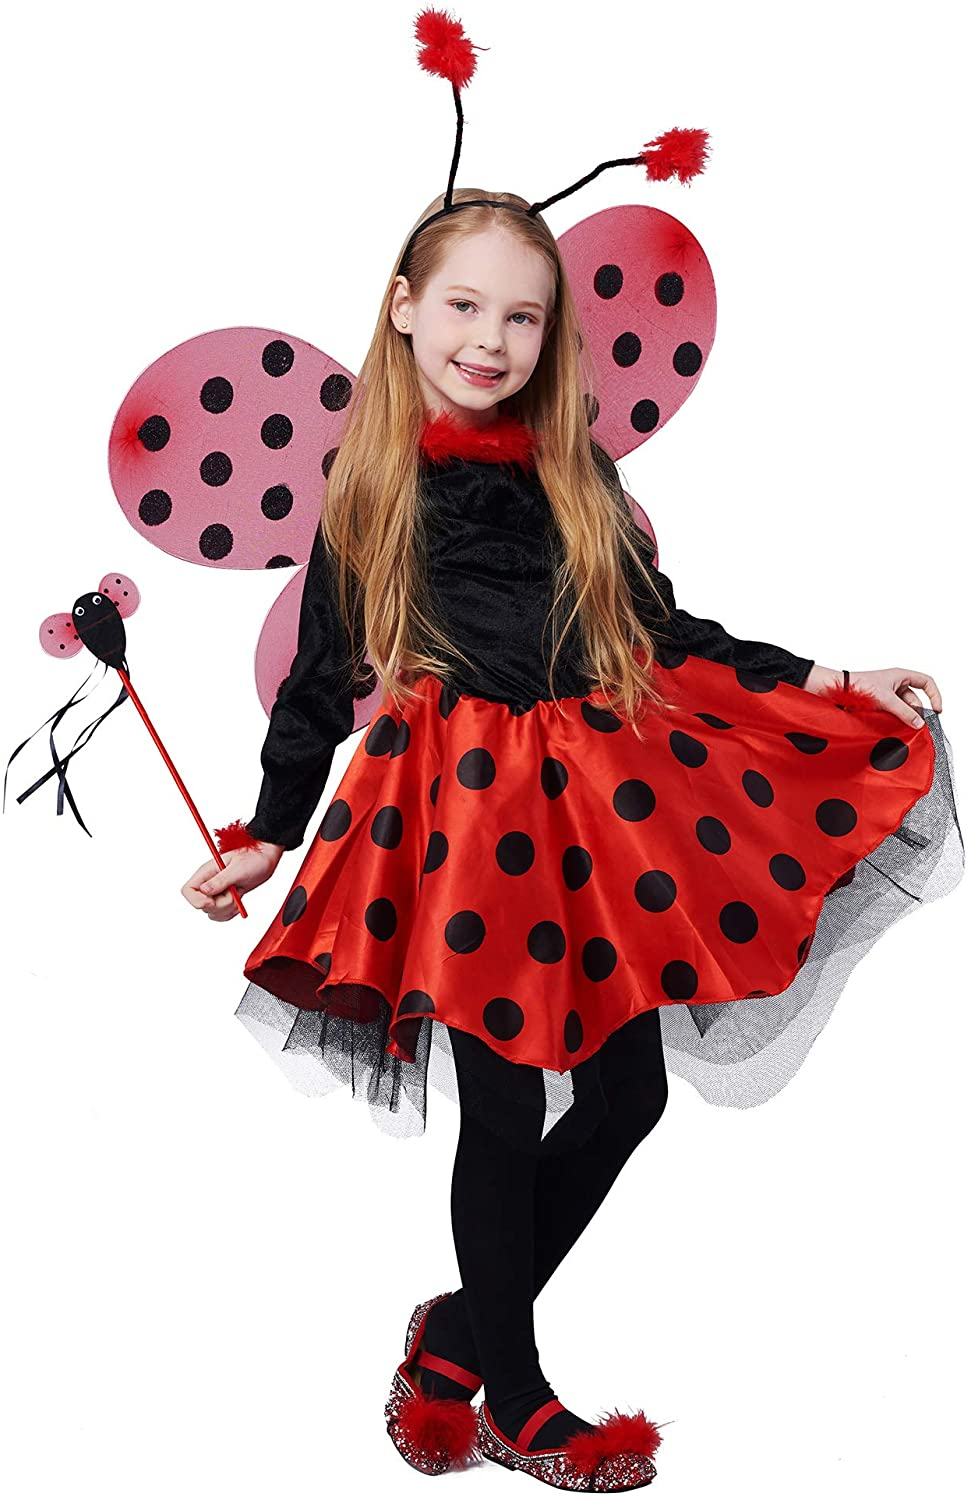 IKALI Ladybug Costume Ballerina Beetle Wings Fancy Dress up Outfit Ladybird Suit